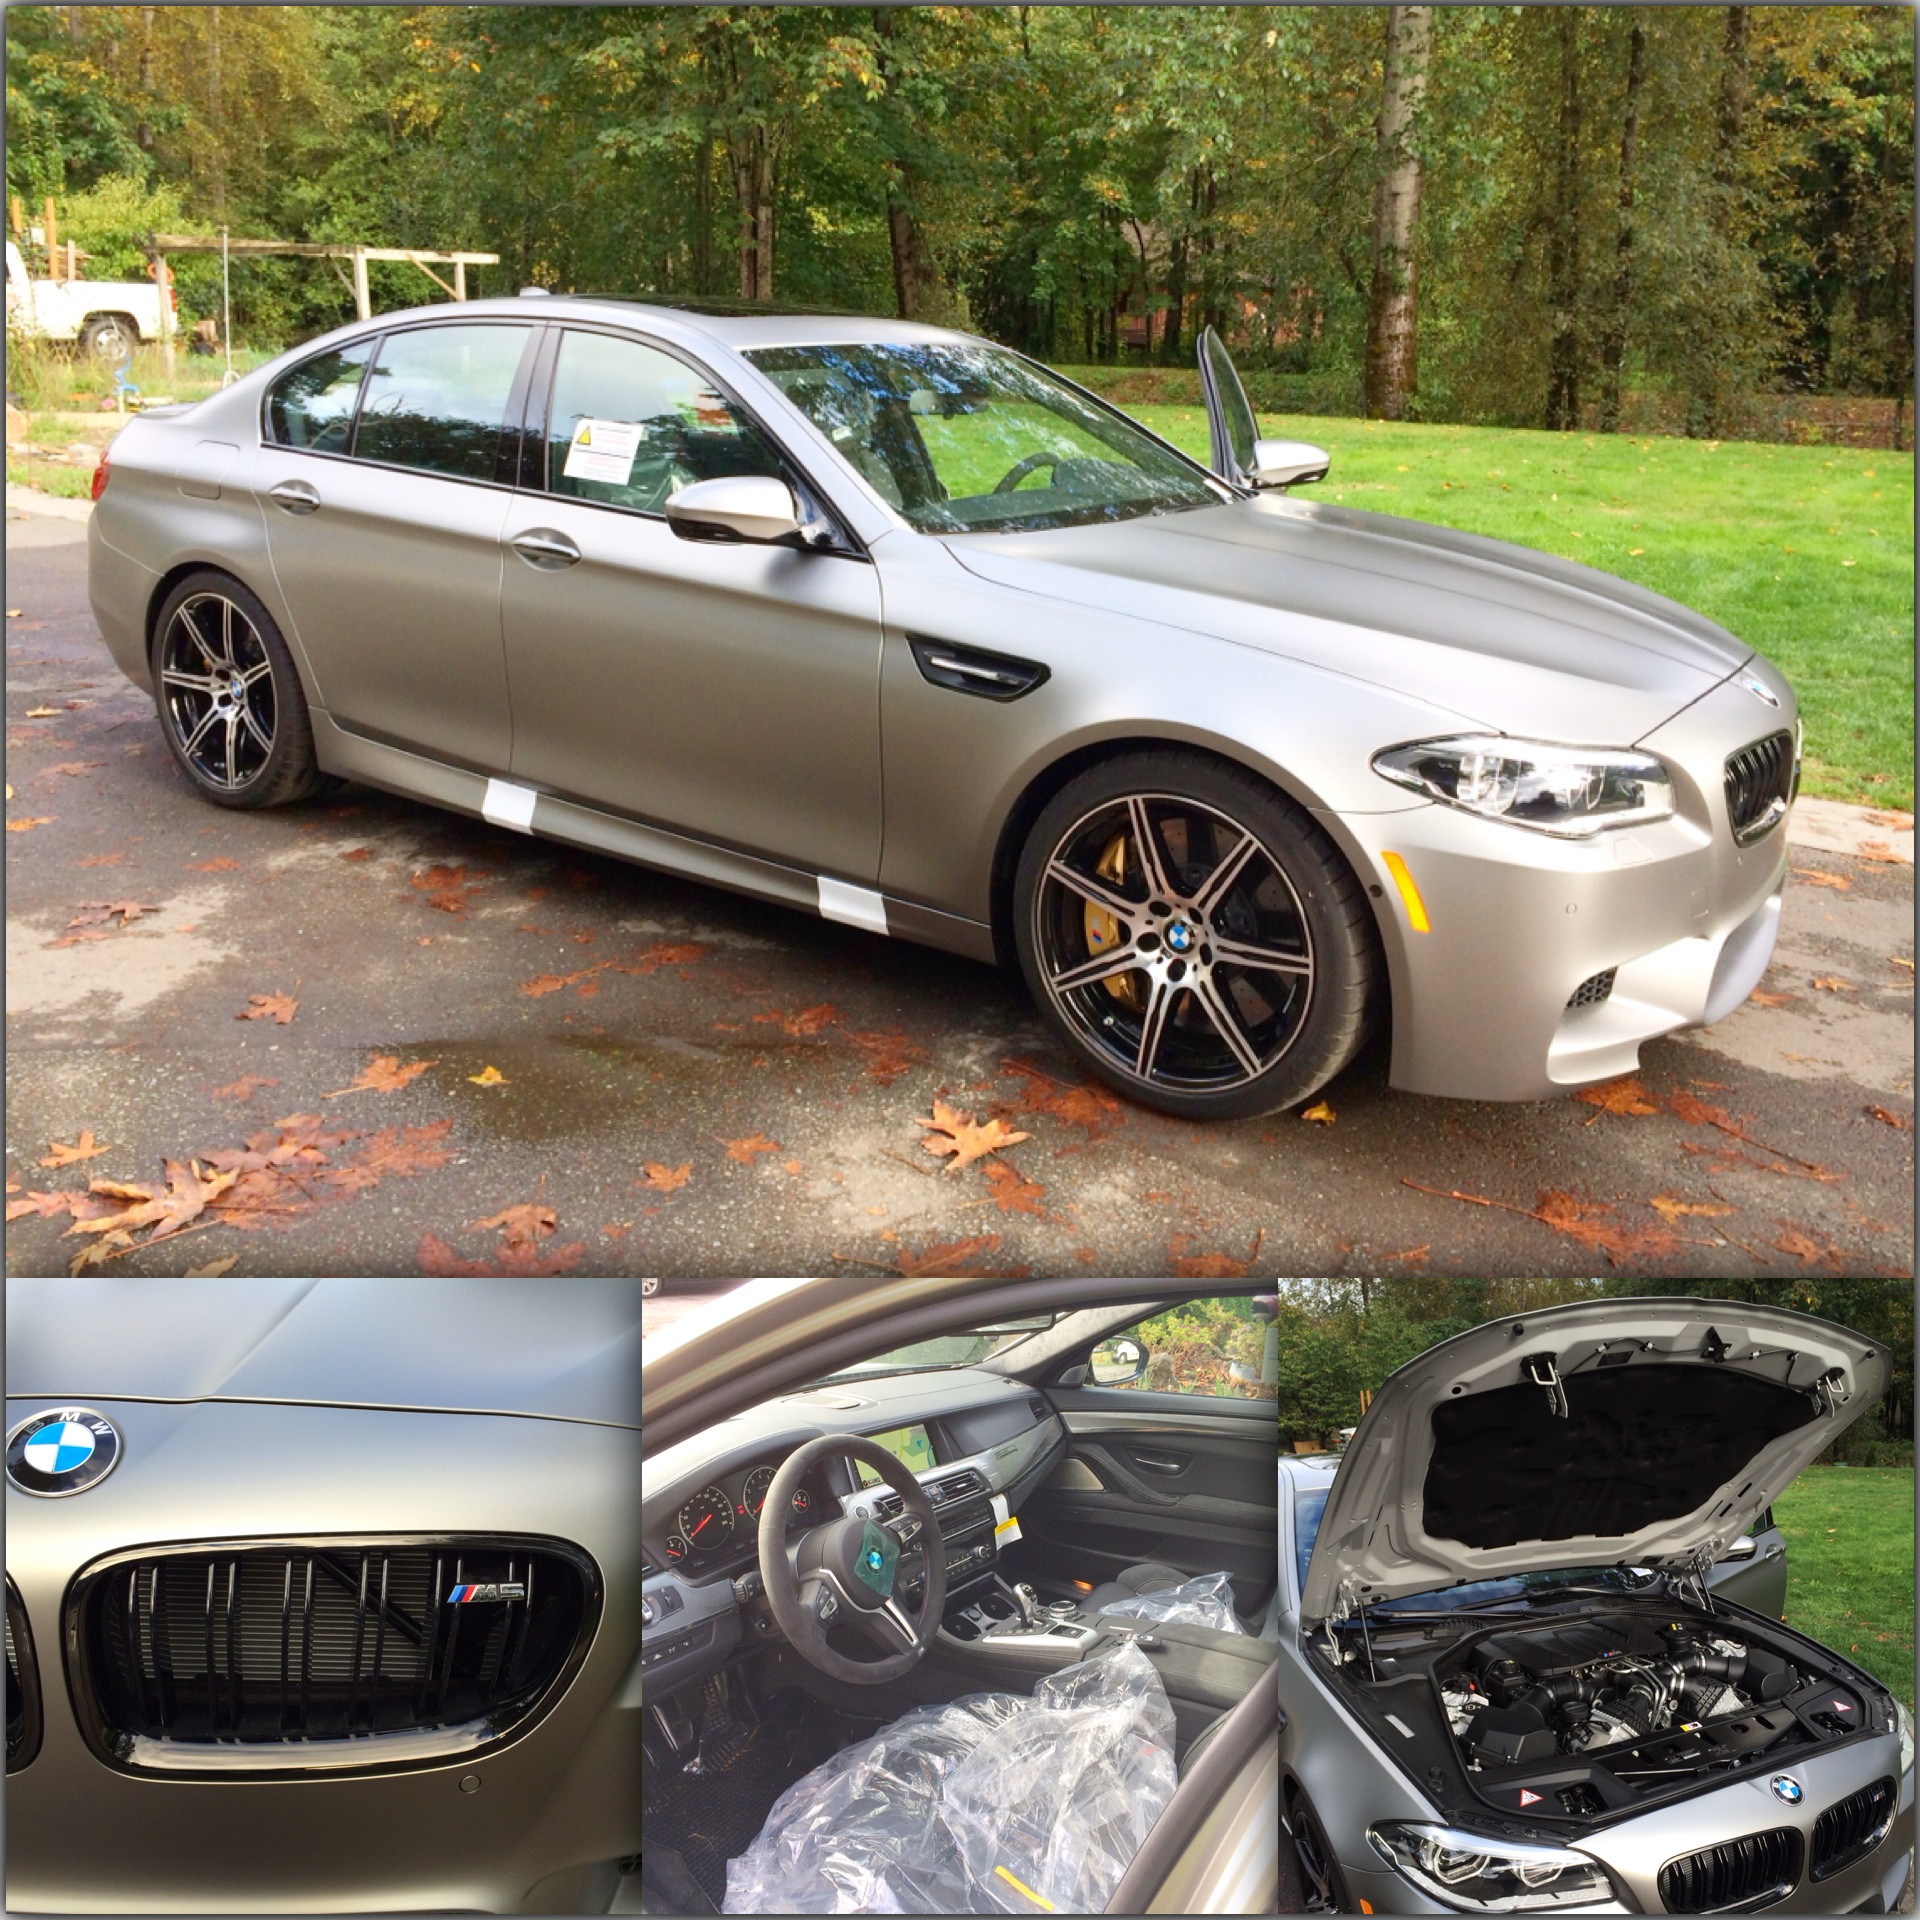 F10 For Sale Extremely rare 1 of 29 BMW M5 Jahre editions  BMW M5